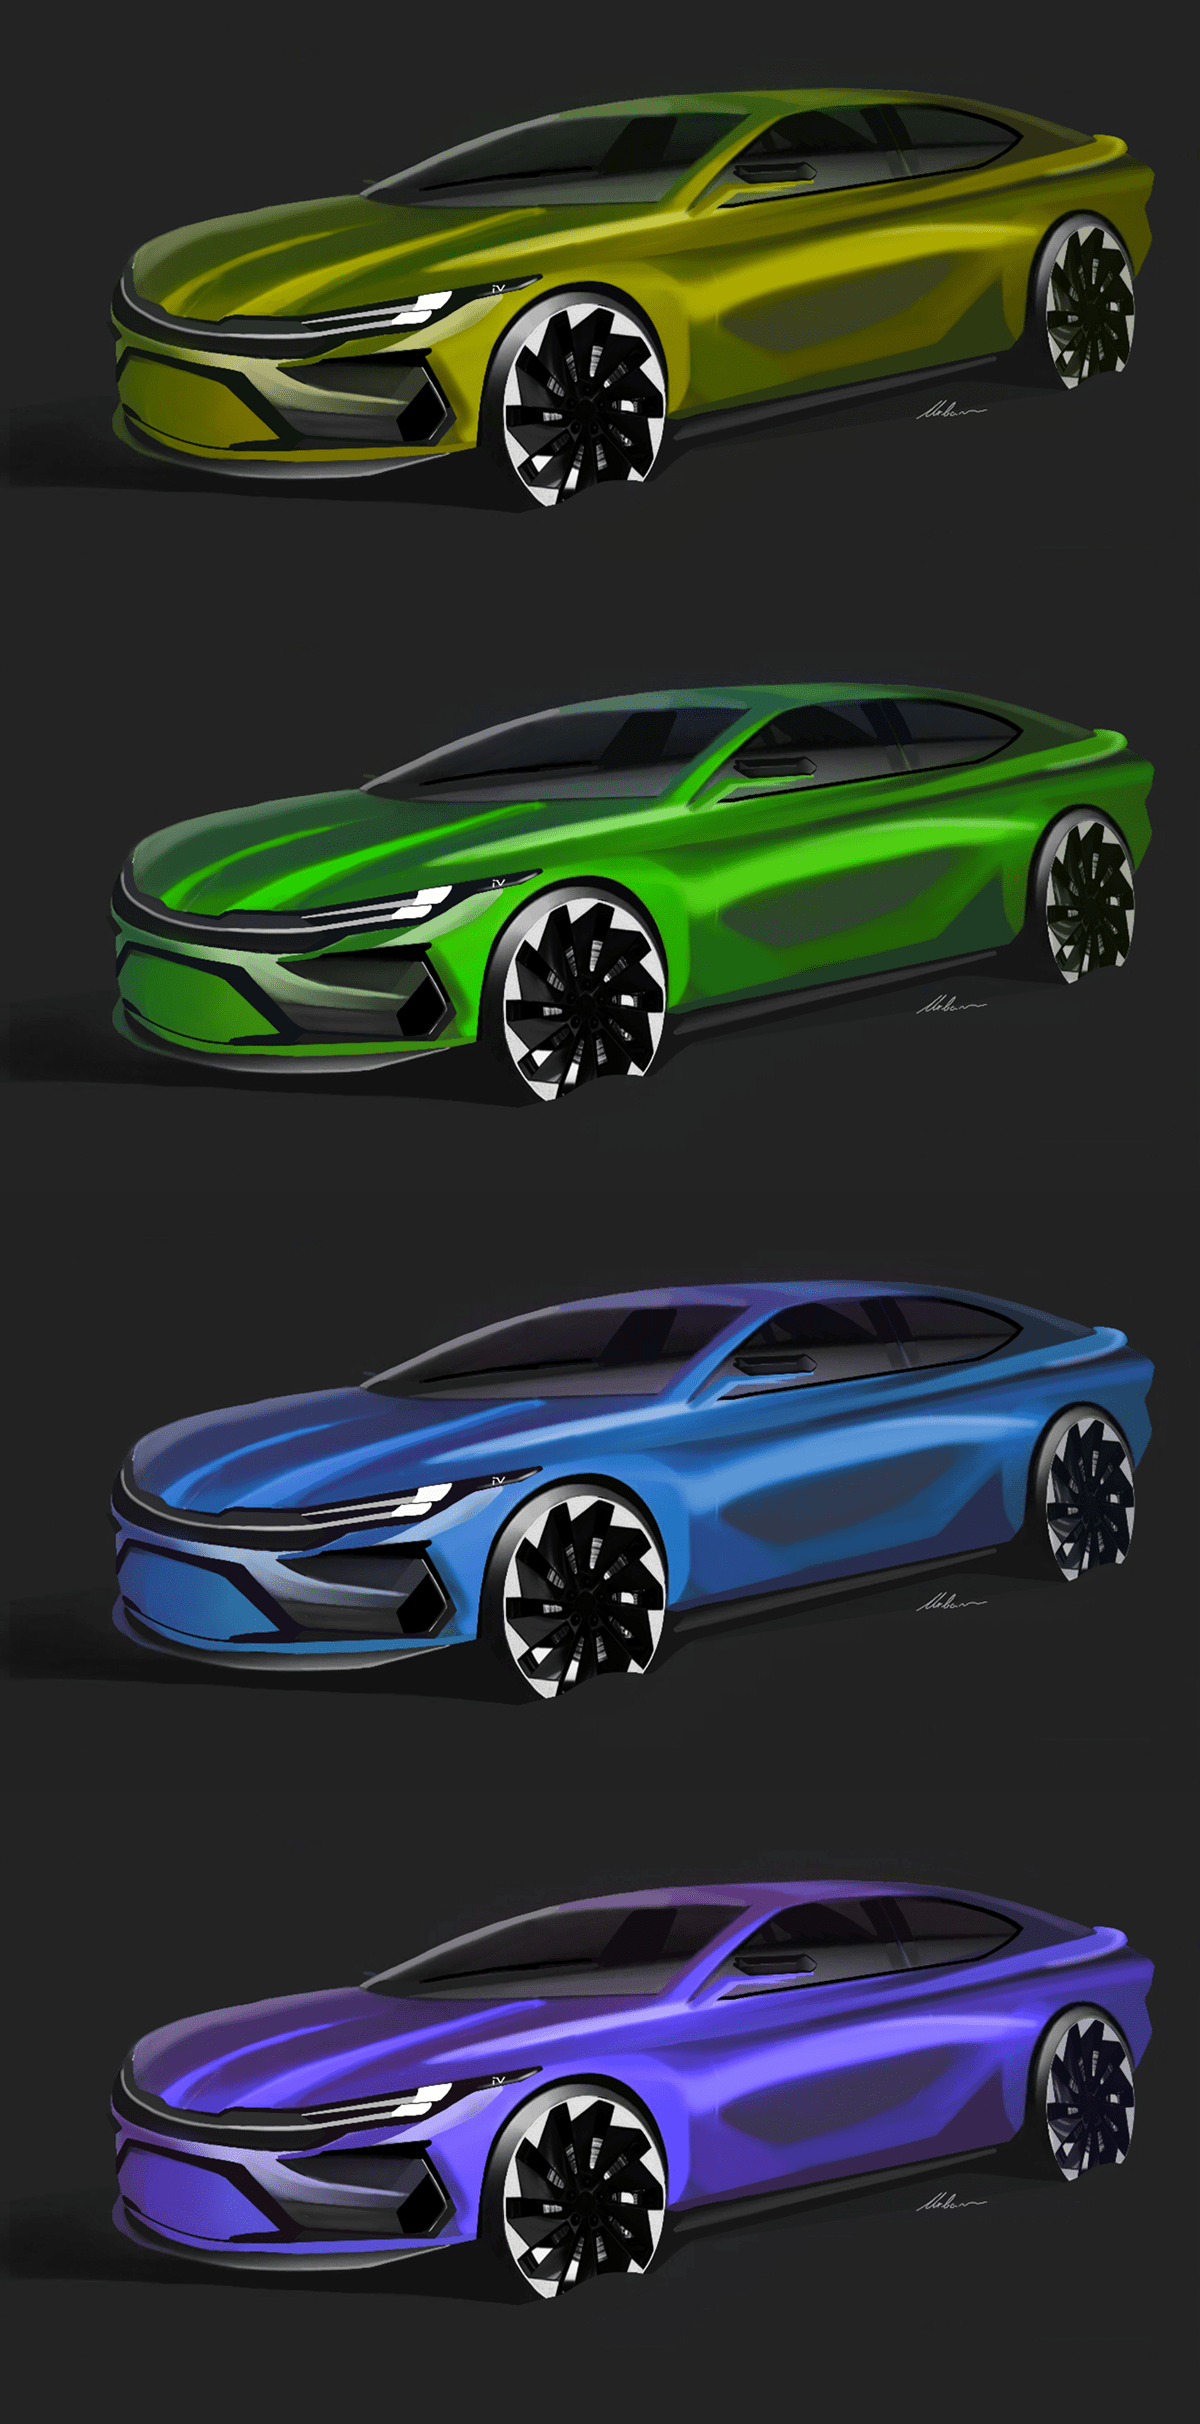 Image may contain: car, automotive and vehicle